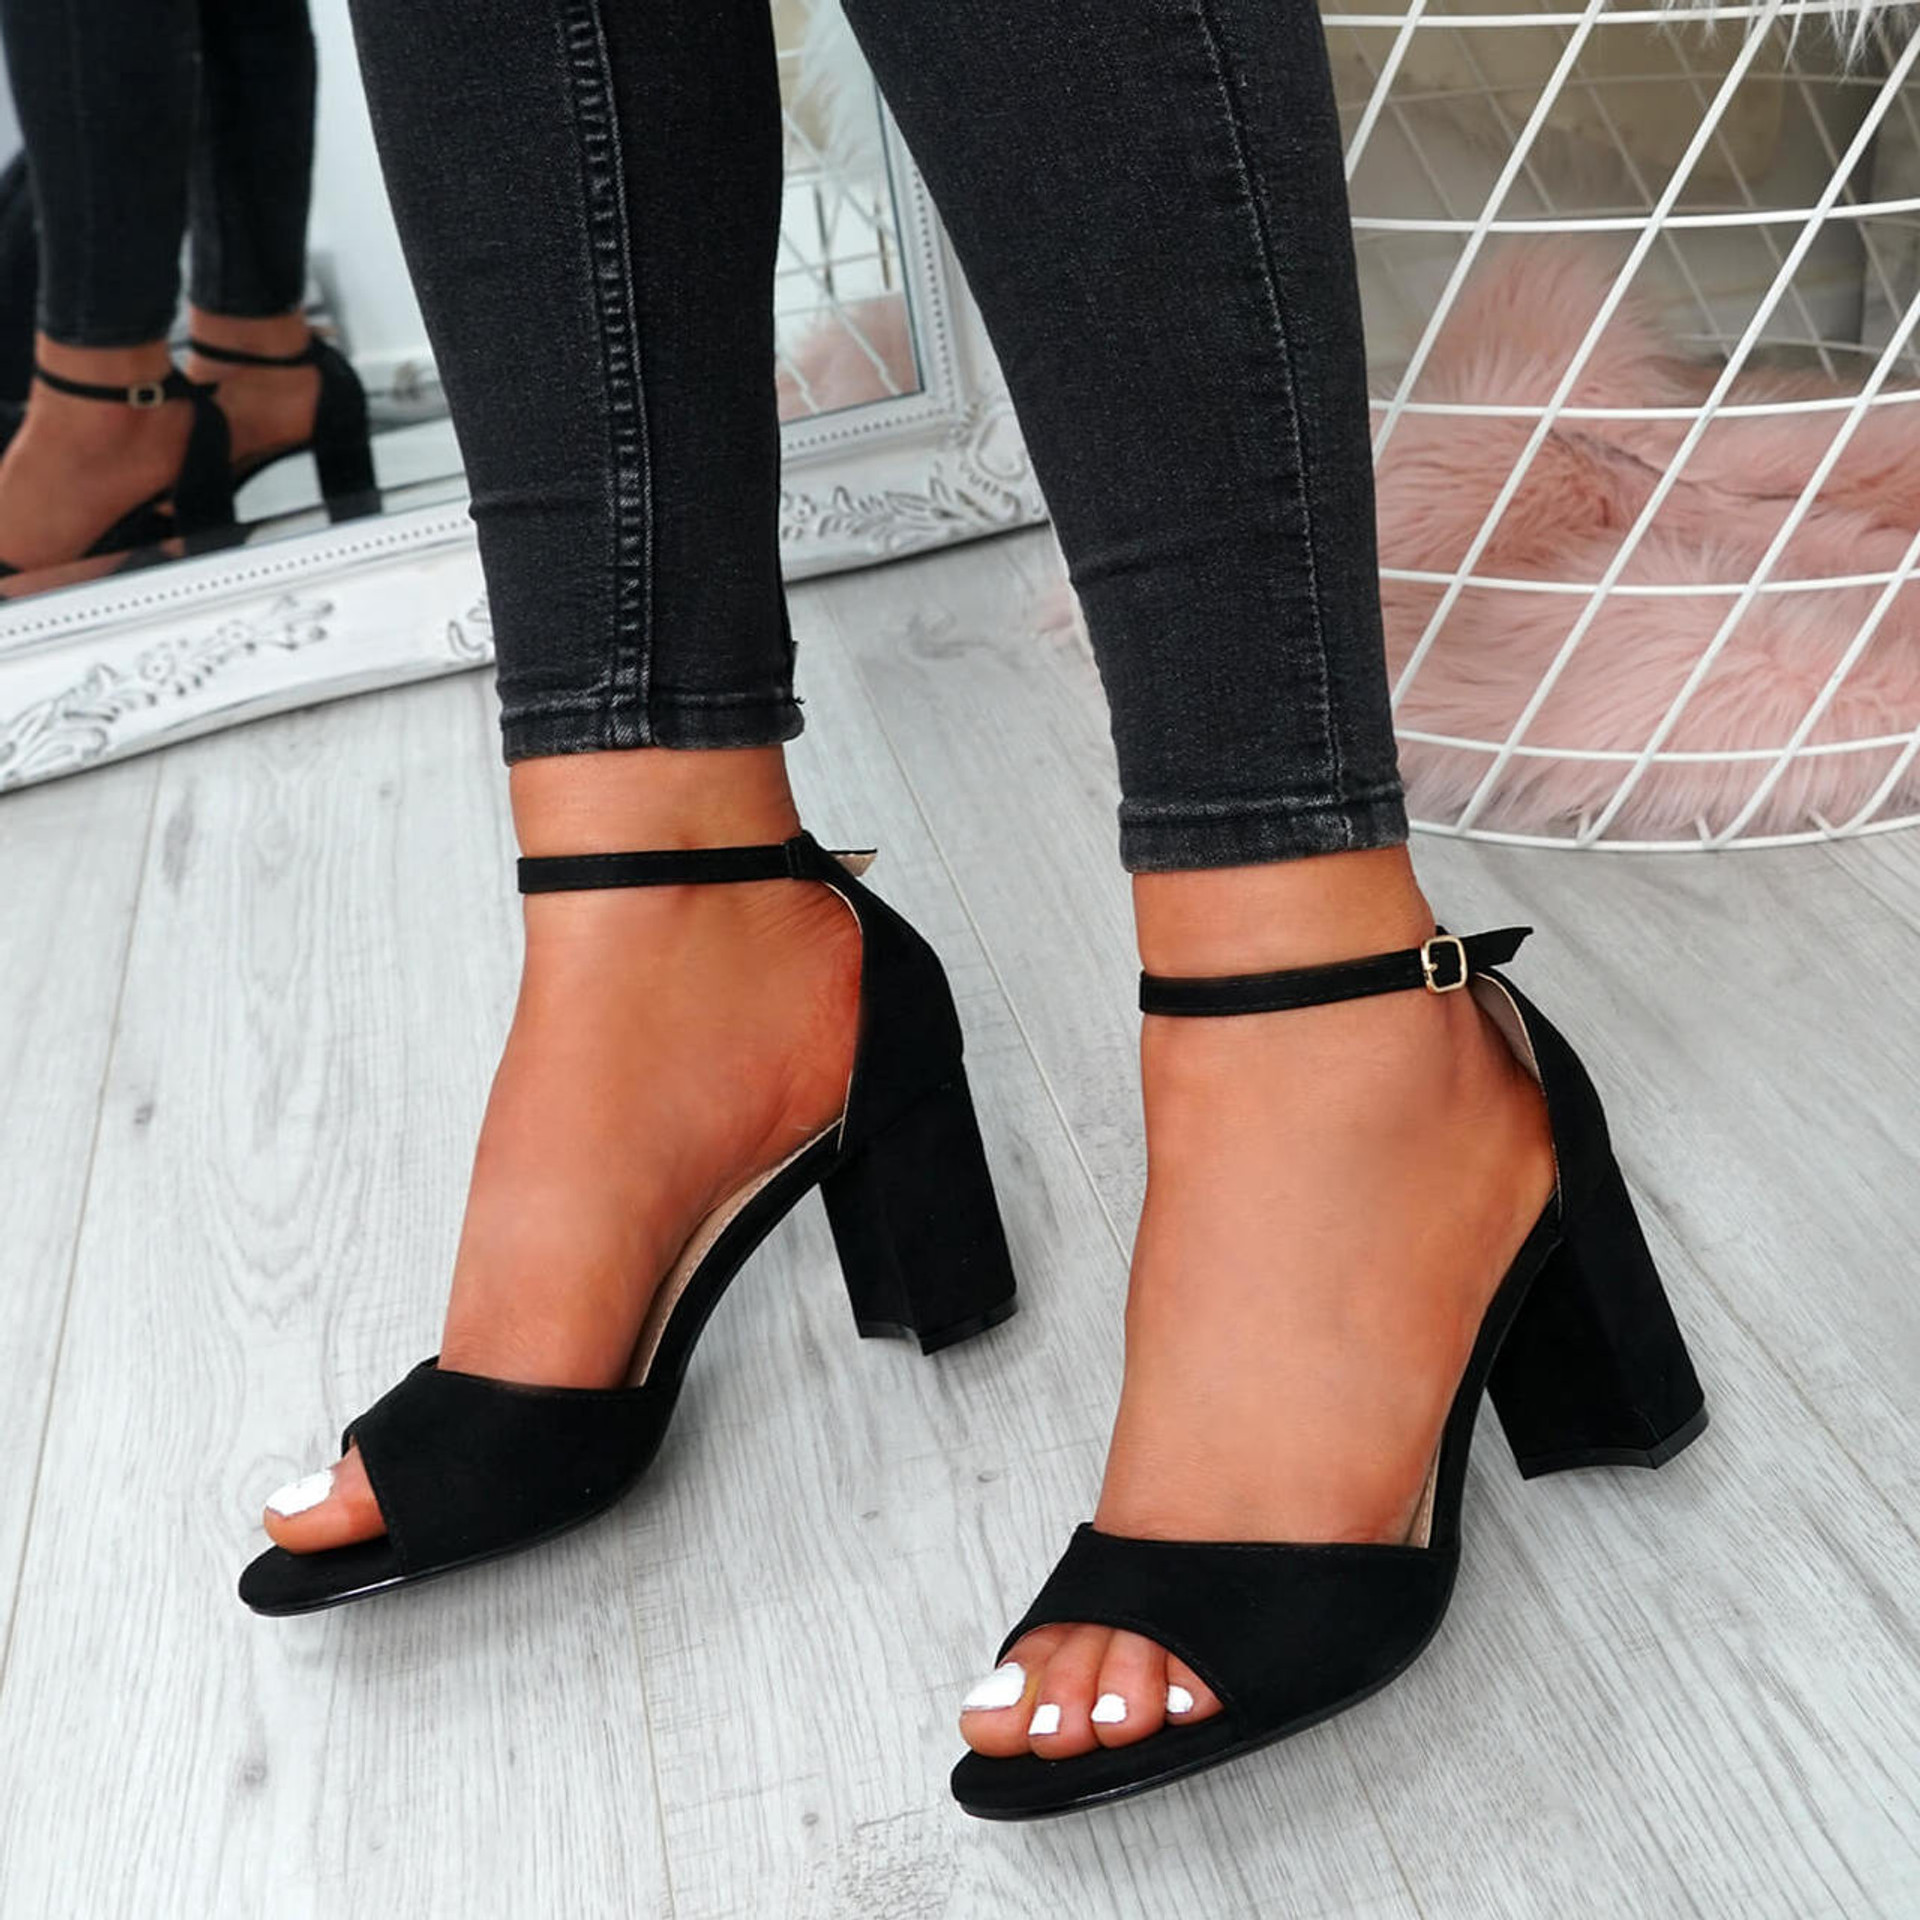 Opia Black Ankle Strap Sandals